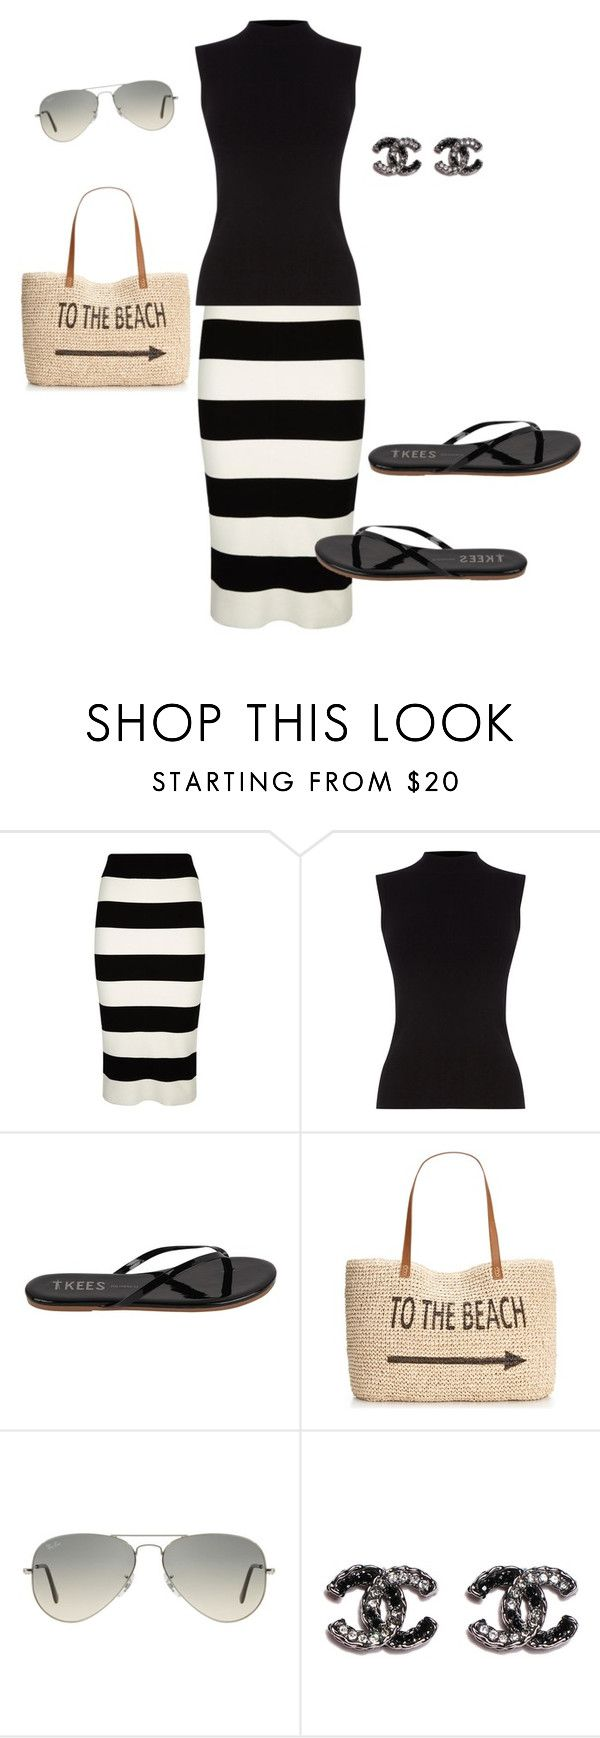 """Untitled #116"" by ccoss ❤ liked on Polyvore featuring Milly, Oasis, Tkees, Style & Co. and Ray-Ban"